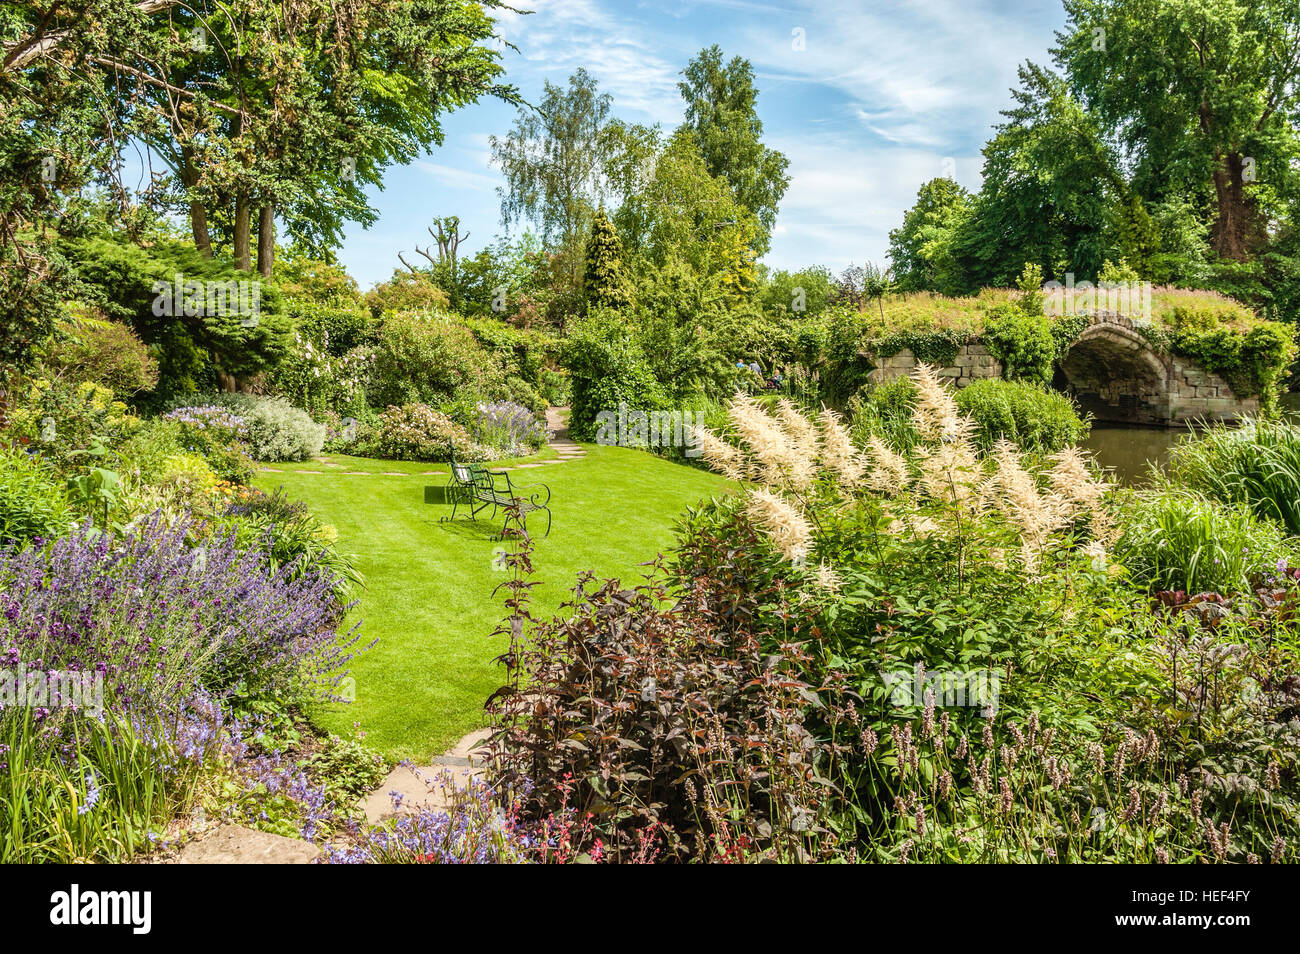 Mill Garden just below the Caesars Tower of Warwick Castle in Warwick a medieval county town of Warwickshire, England. - Stock Image